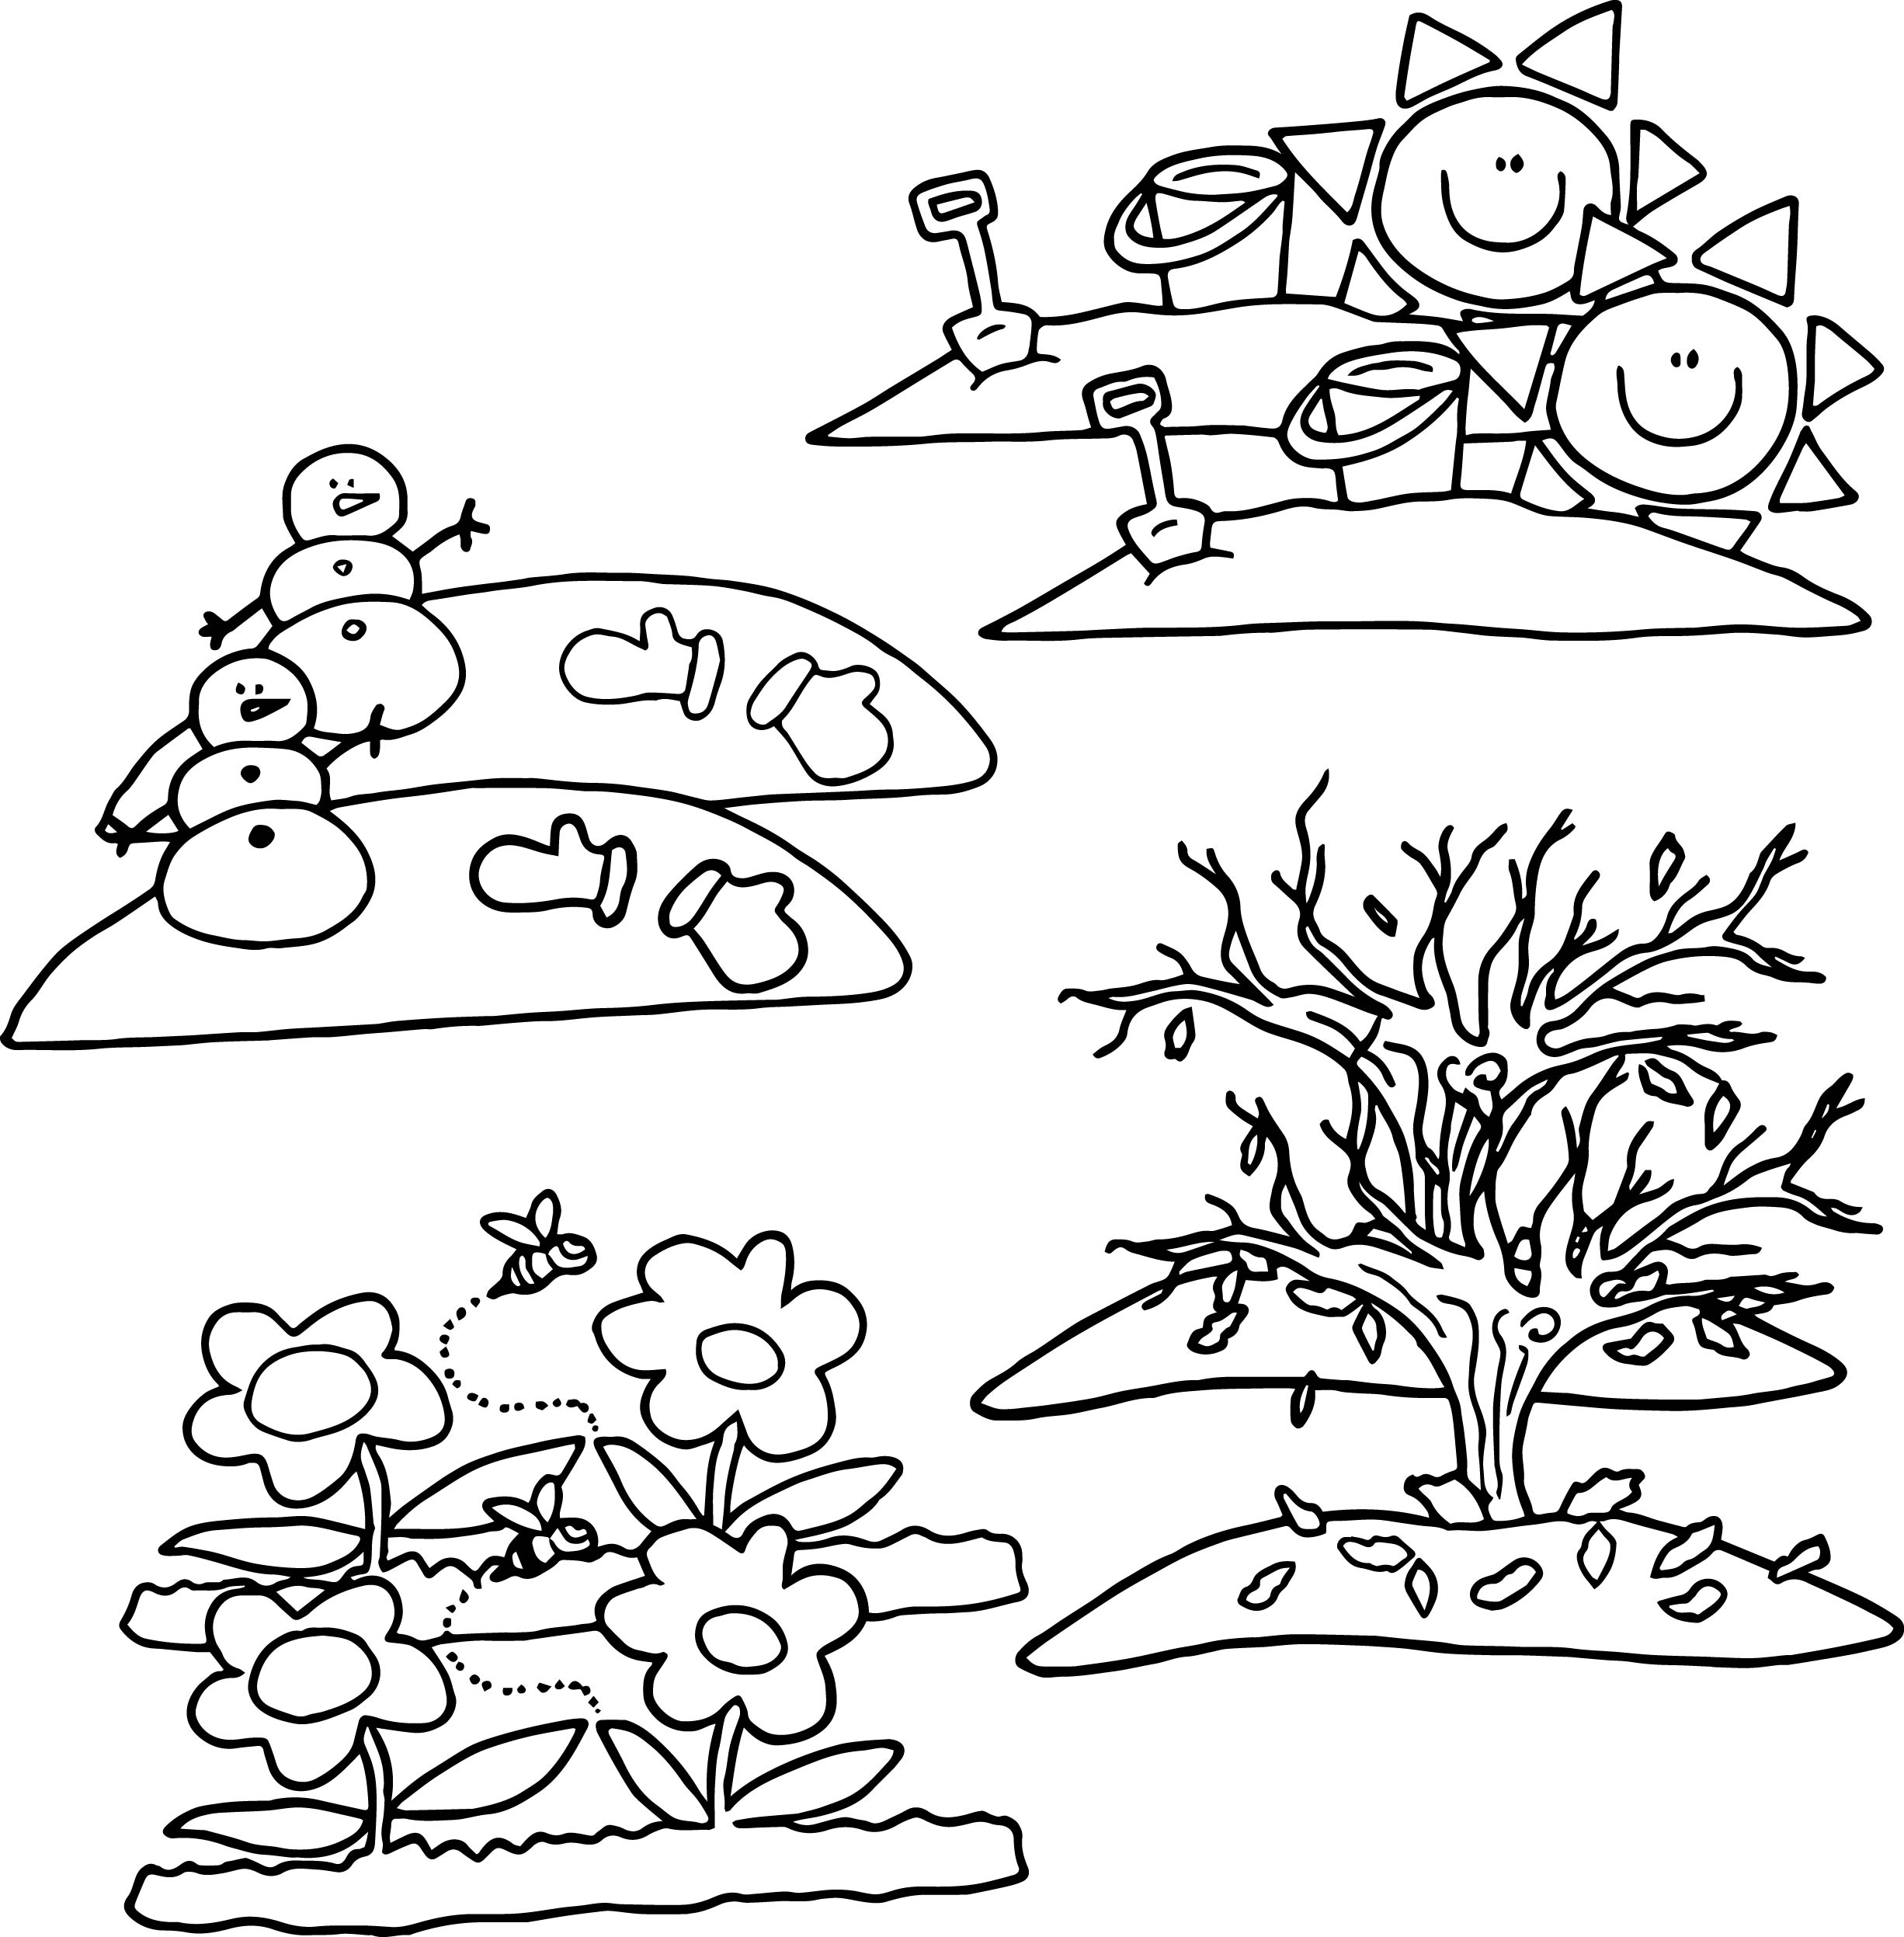 4 seasons cartoon coloring page for Seasonal coloring pages